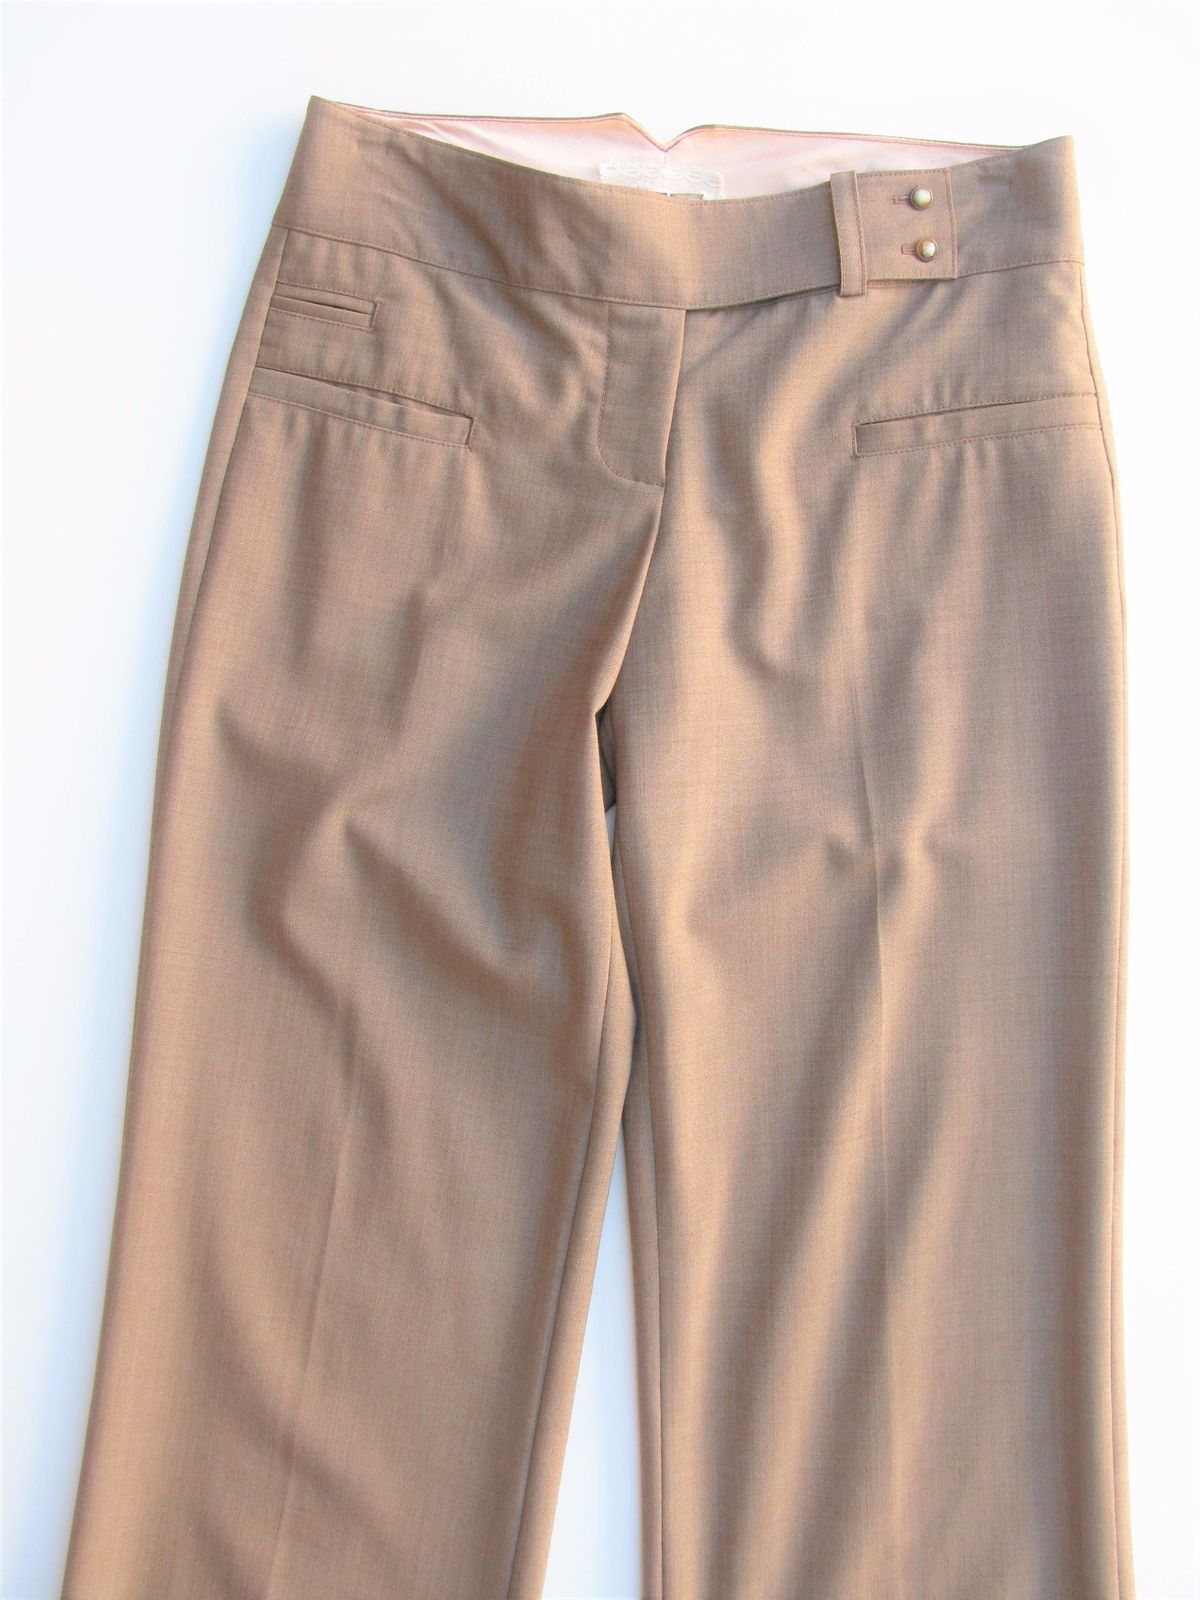 Pants Trousers Career Jak & Rae Anthropologie Stretch Wool Trousers 2 NWOT $265